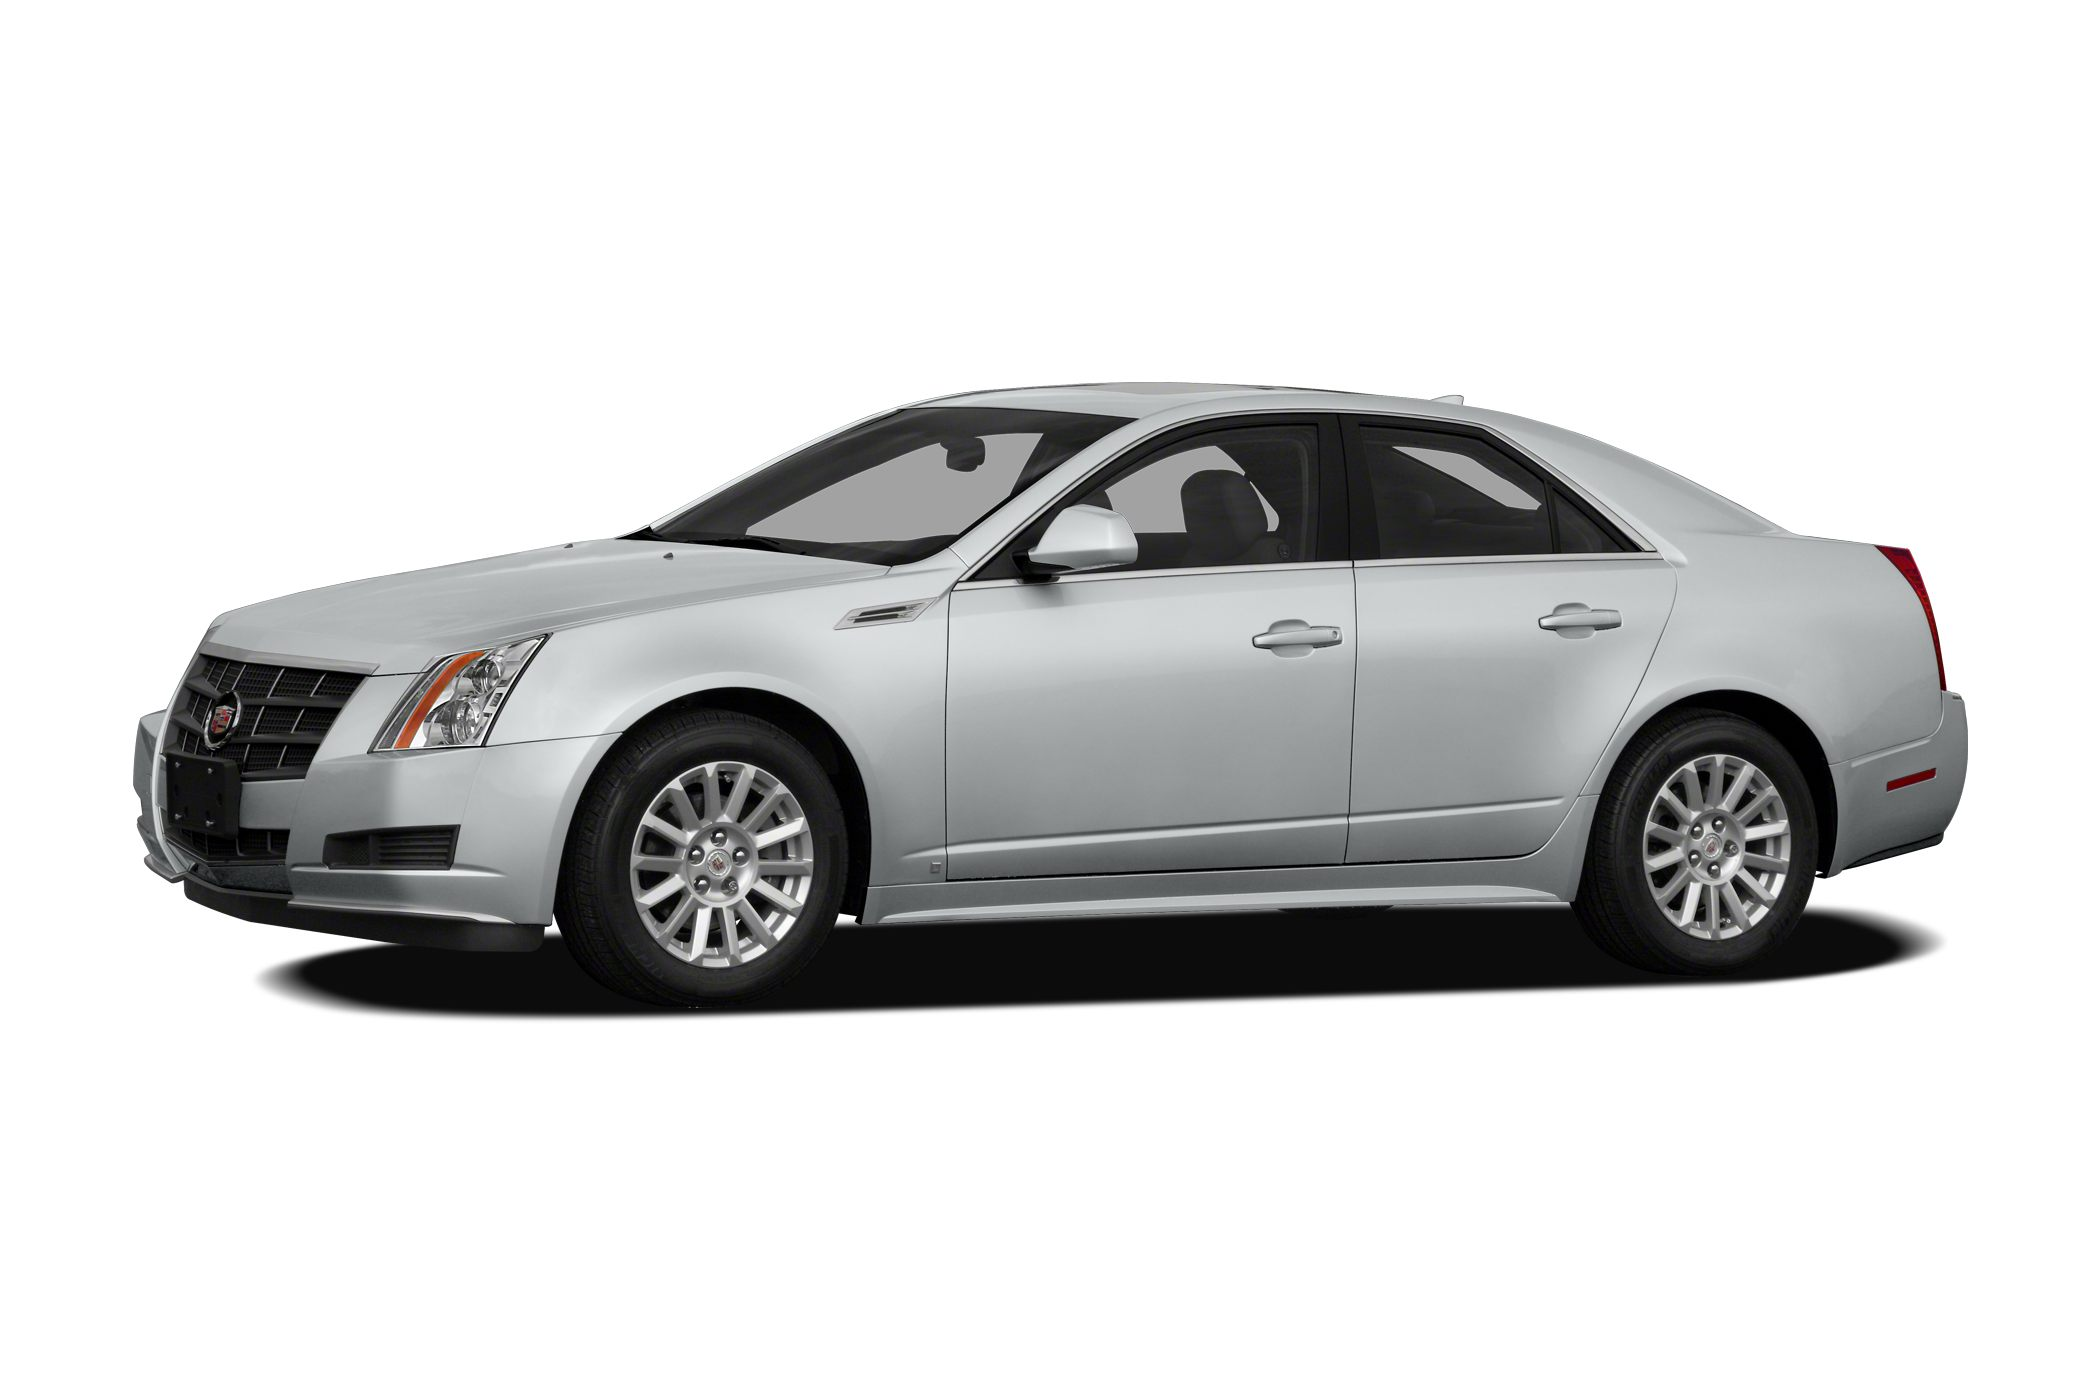 2010 Cadillac CTS Performance Sedan for sale in Conway for $17,877 with 91,157 miles.